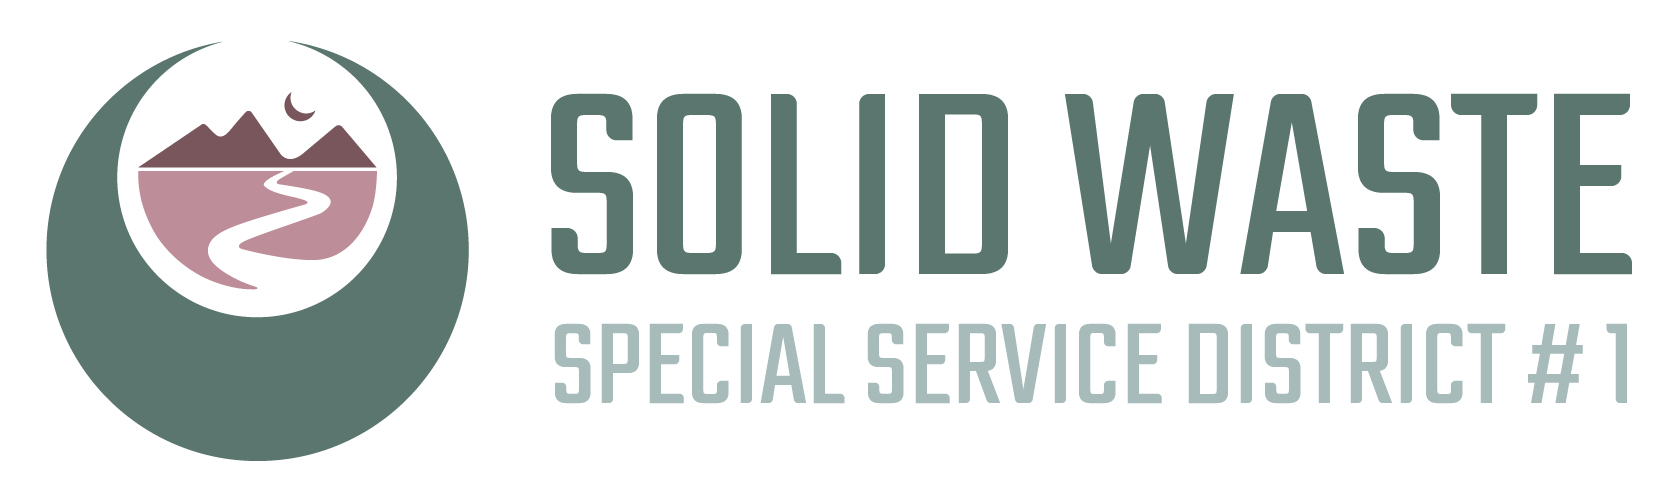 Solid Waste Special Service District #1